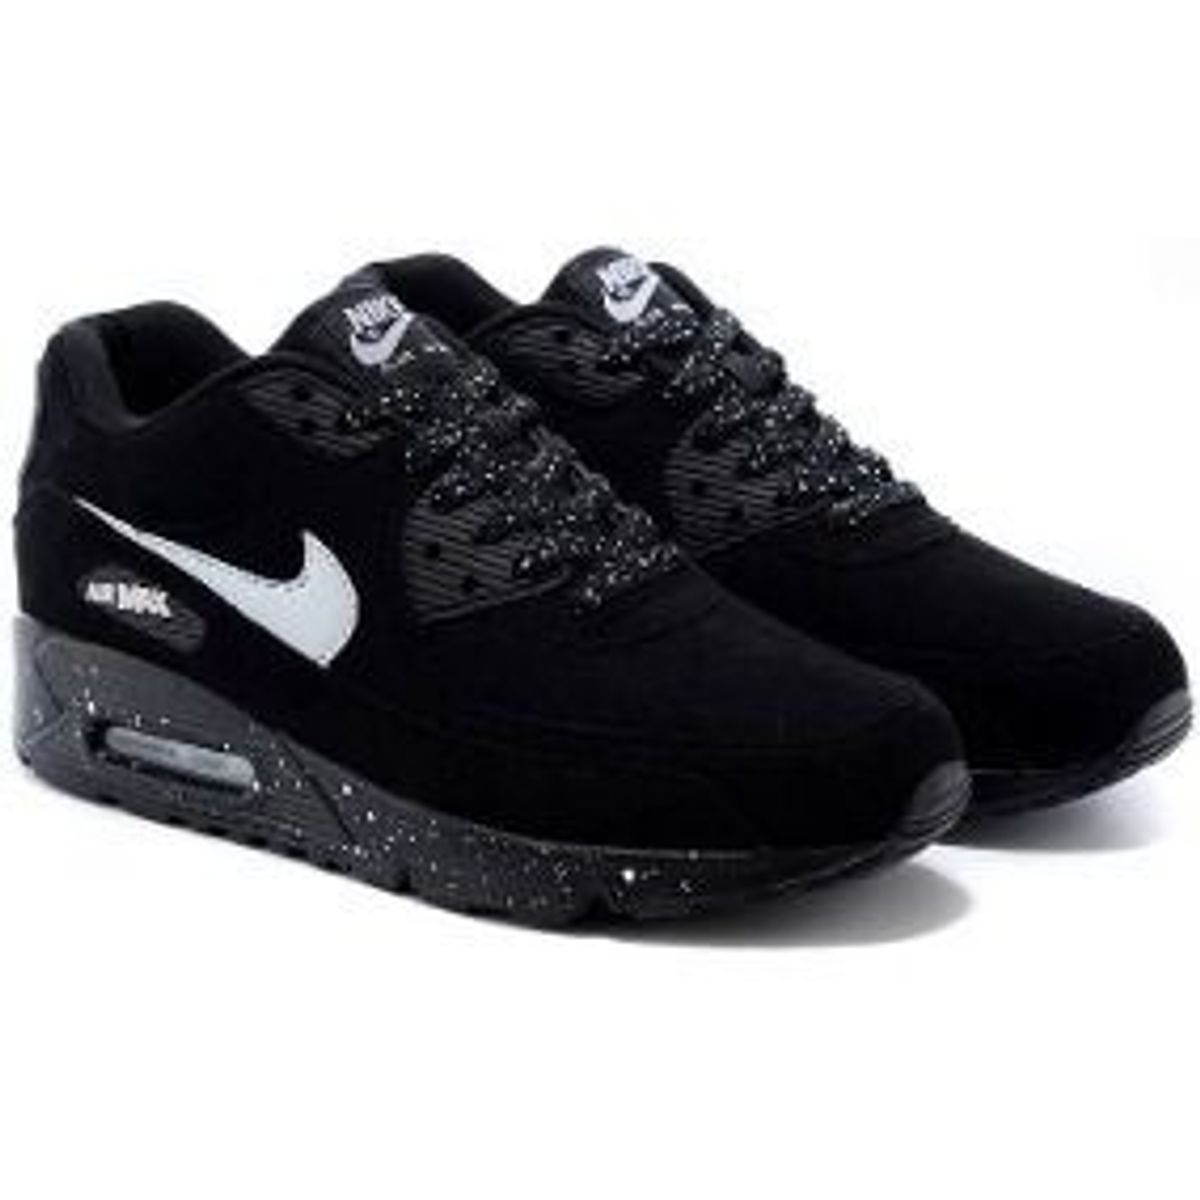 air max 40 buy clothes shoes online